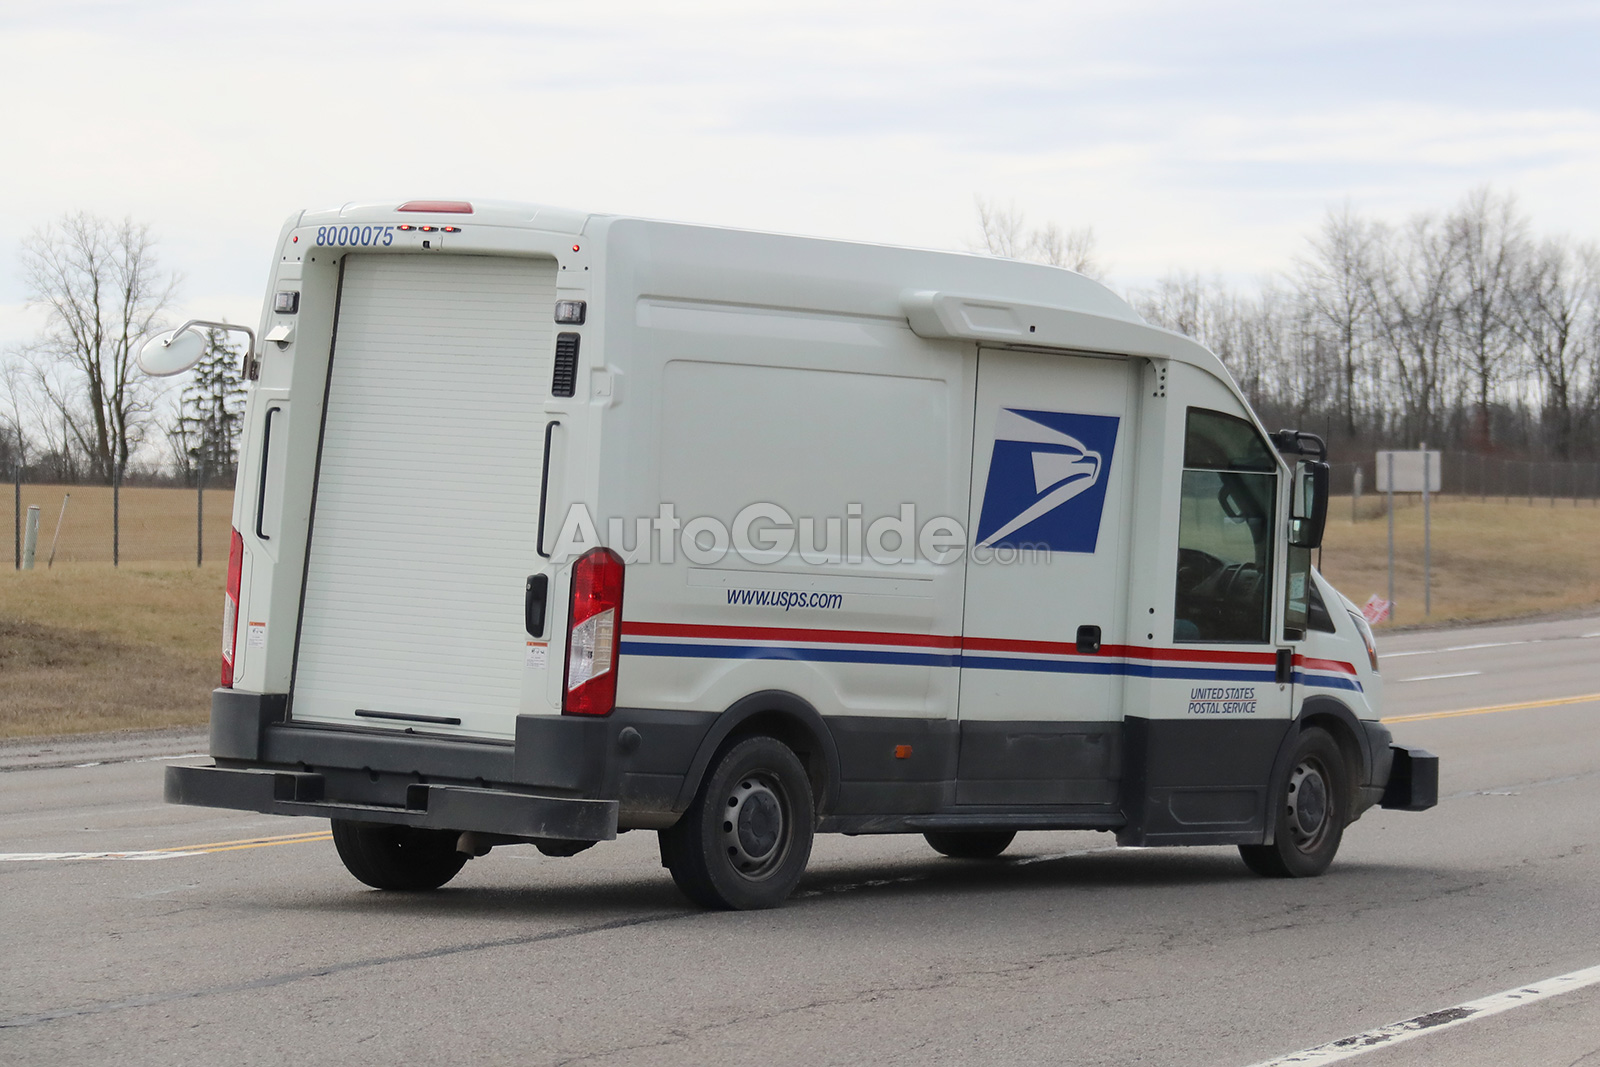 The Next USPS Truck Will Look Kind of Hilarious » AutoGuide